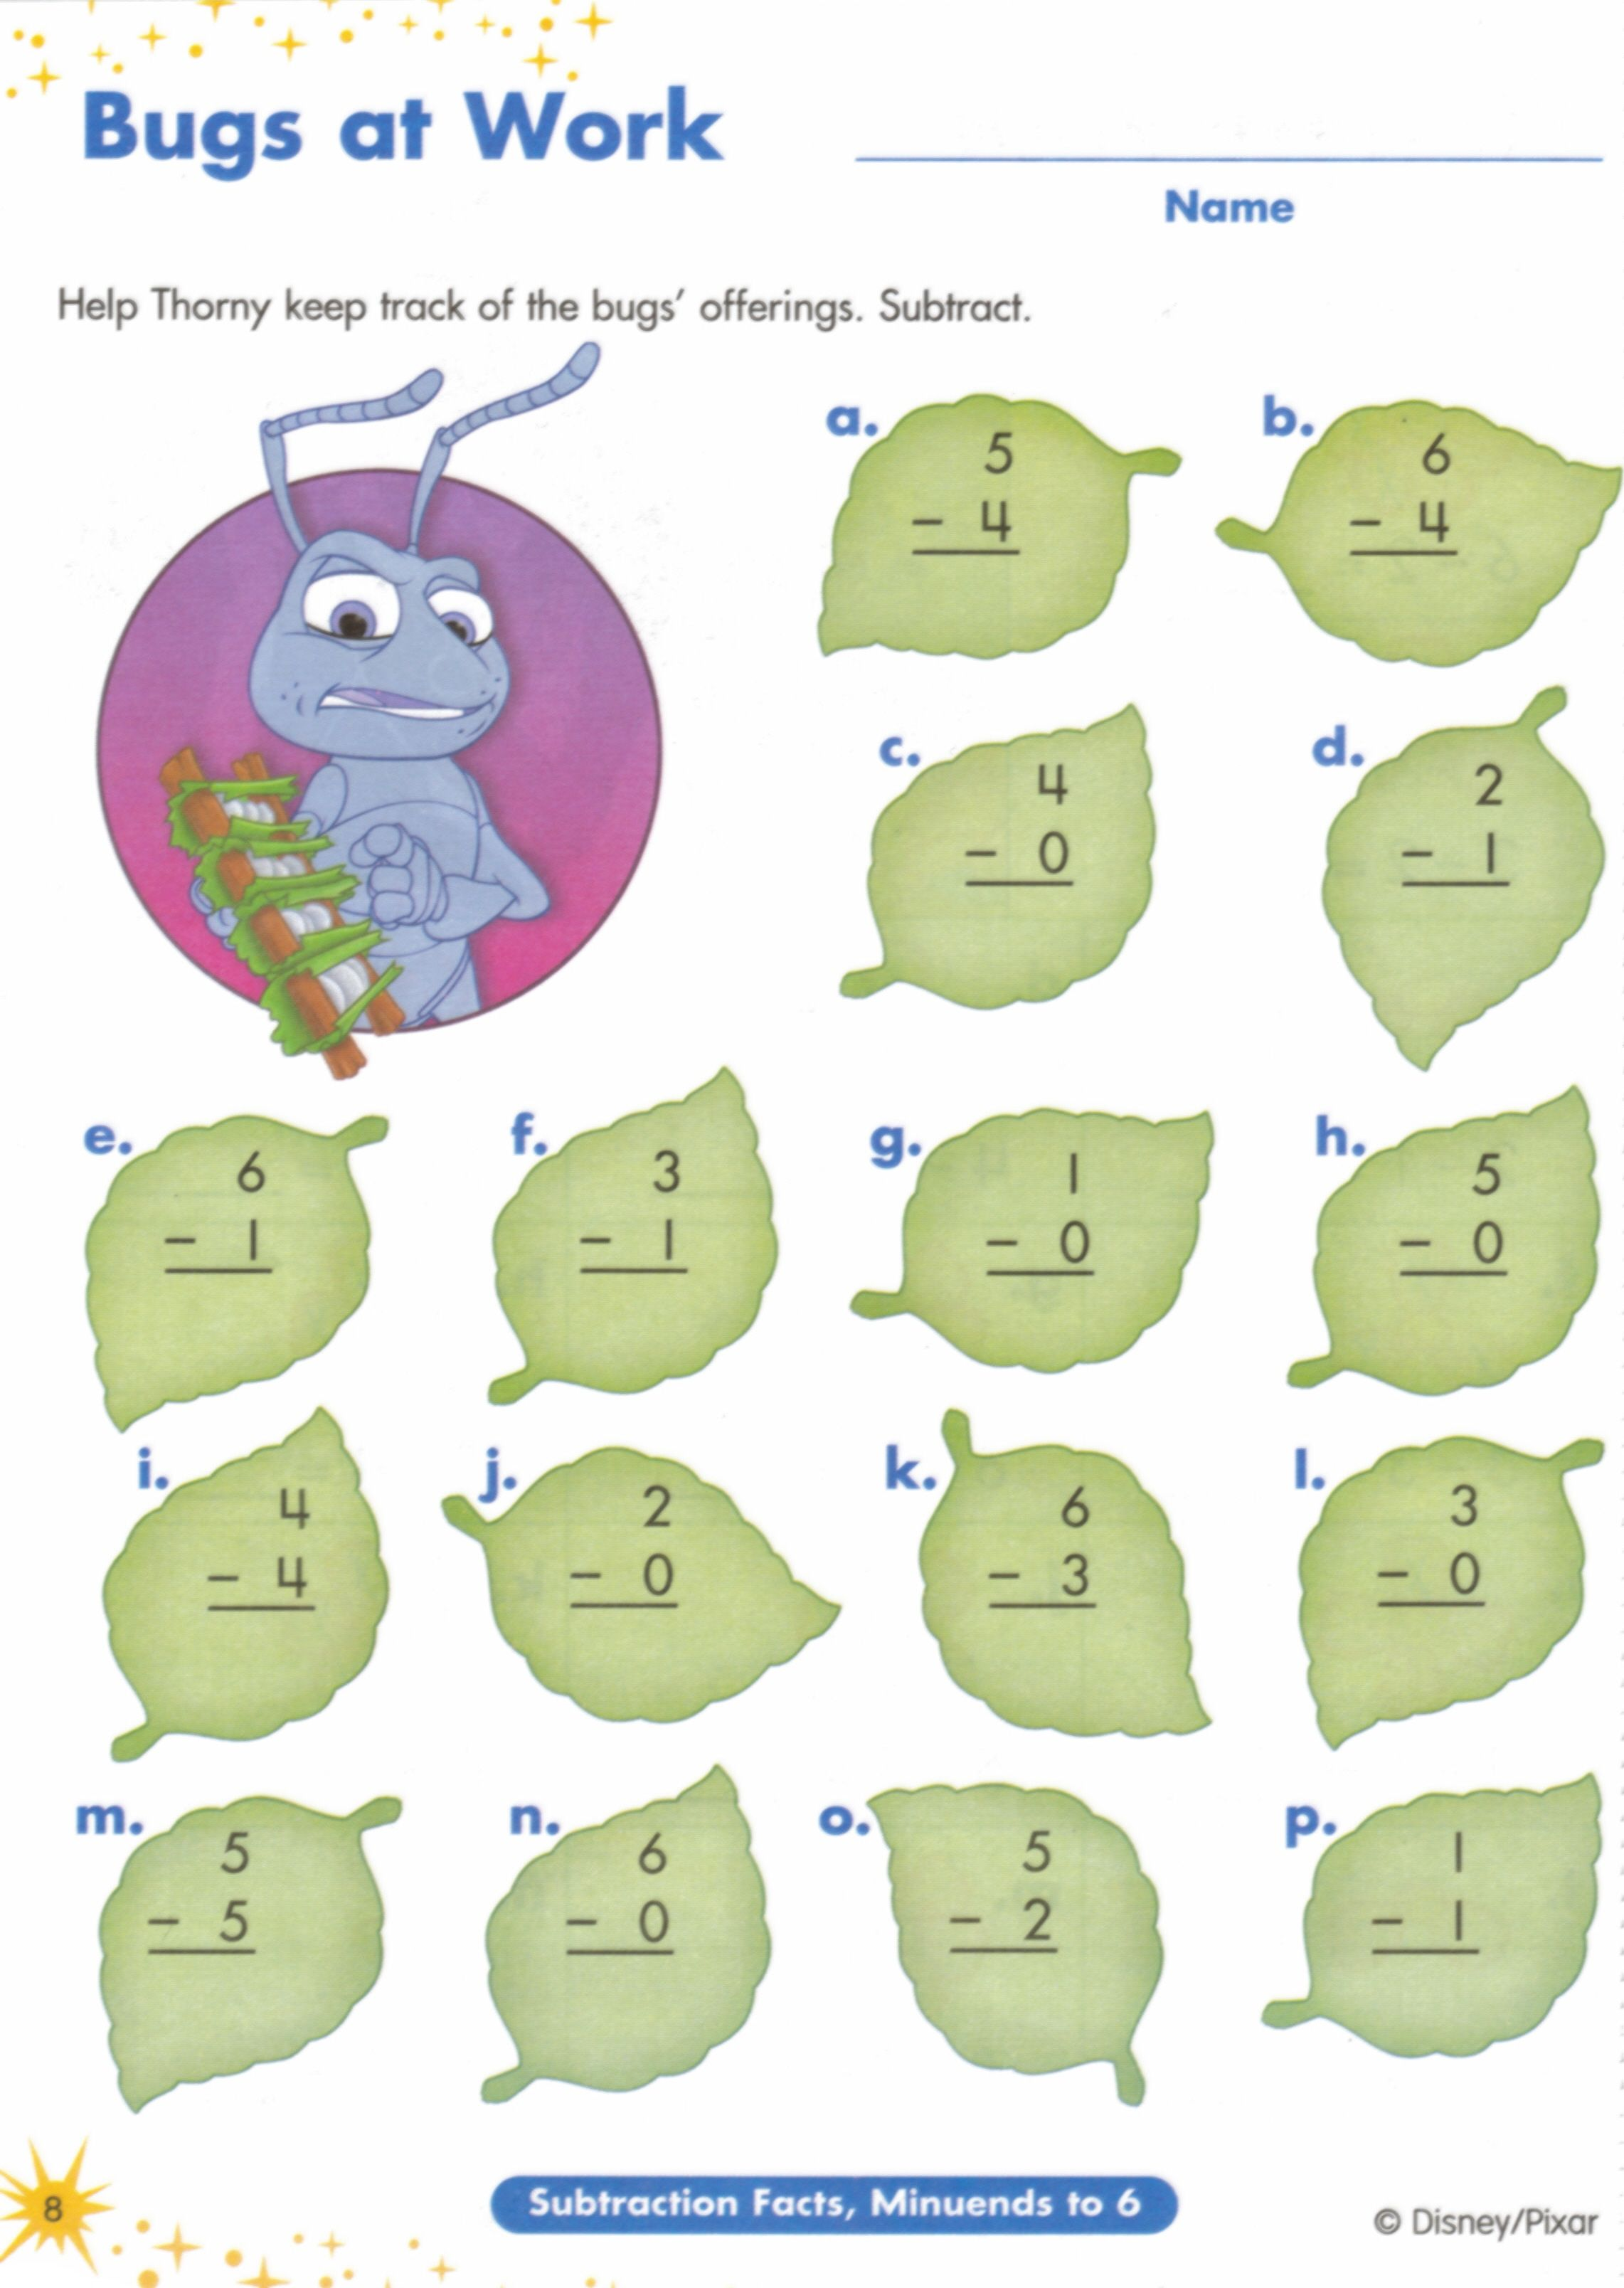 Proatmealus  Gorgeous  Images About Worksheets On Pinterest  Fun Facts For Kids  With Exquisite  Images About Worksheets On Pinterest  Fun Facts For Kids Earth Day Worksheets And Jungles With Beauteous Simple Linear Equations Worksheet Also Linking Excel Worksheets In Addition Excel Worksheet Range And Telling The Time Worksheets As Well As Area Of A Sector Of A Circle Worksheet Additionally Kitchen Safety Worksheet From Pinterestcom With Proatmealus  Exquisite  Images About Worksheets On Pinterest  Fun Facts For Kids  With Beauteous  Images About Worksheets On Pinterest  Fun Facts For Kids Earth Day Worksheets And Jungles And Gorgeous Simple Linear Equations Worksheet Also Linking Excel Worksheets In Addition Excel Worksheet Range From Pinterestcom